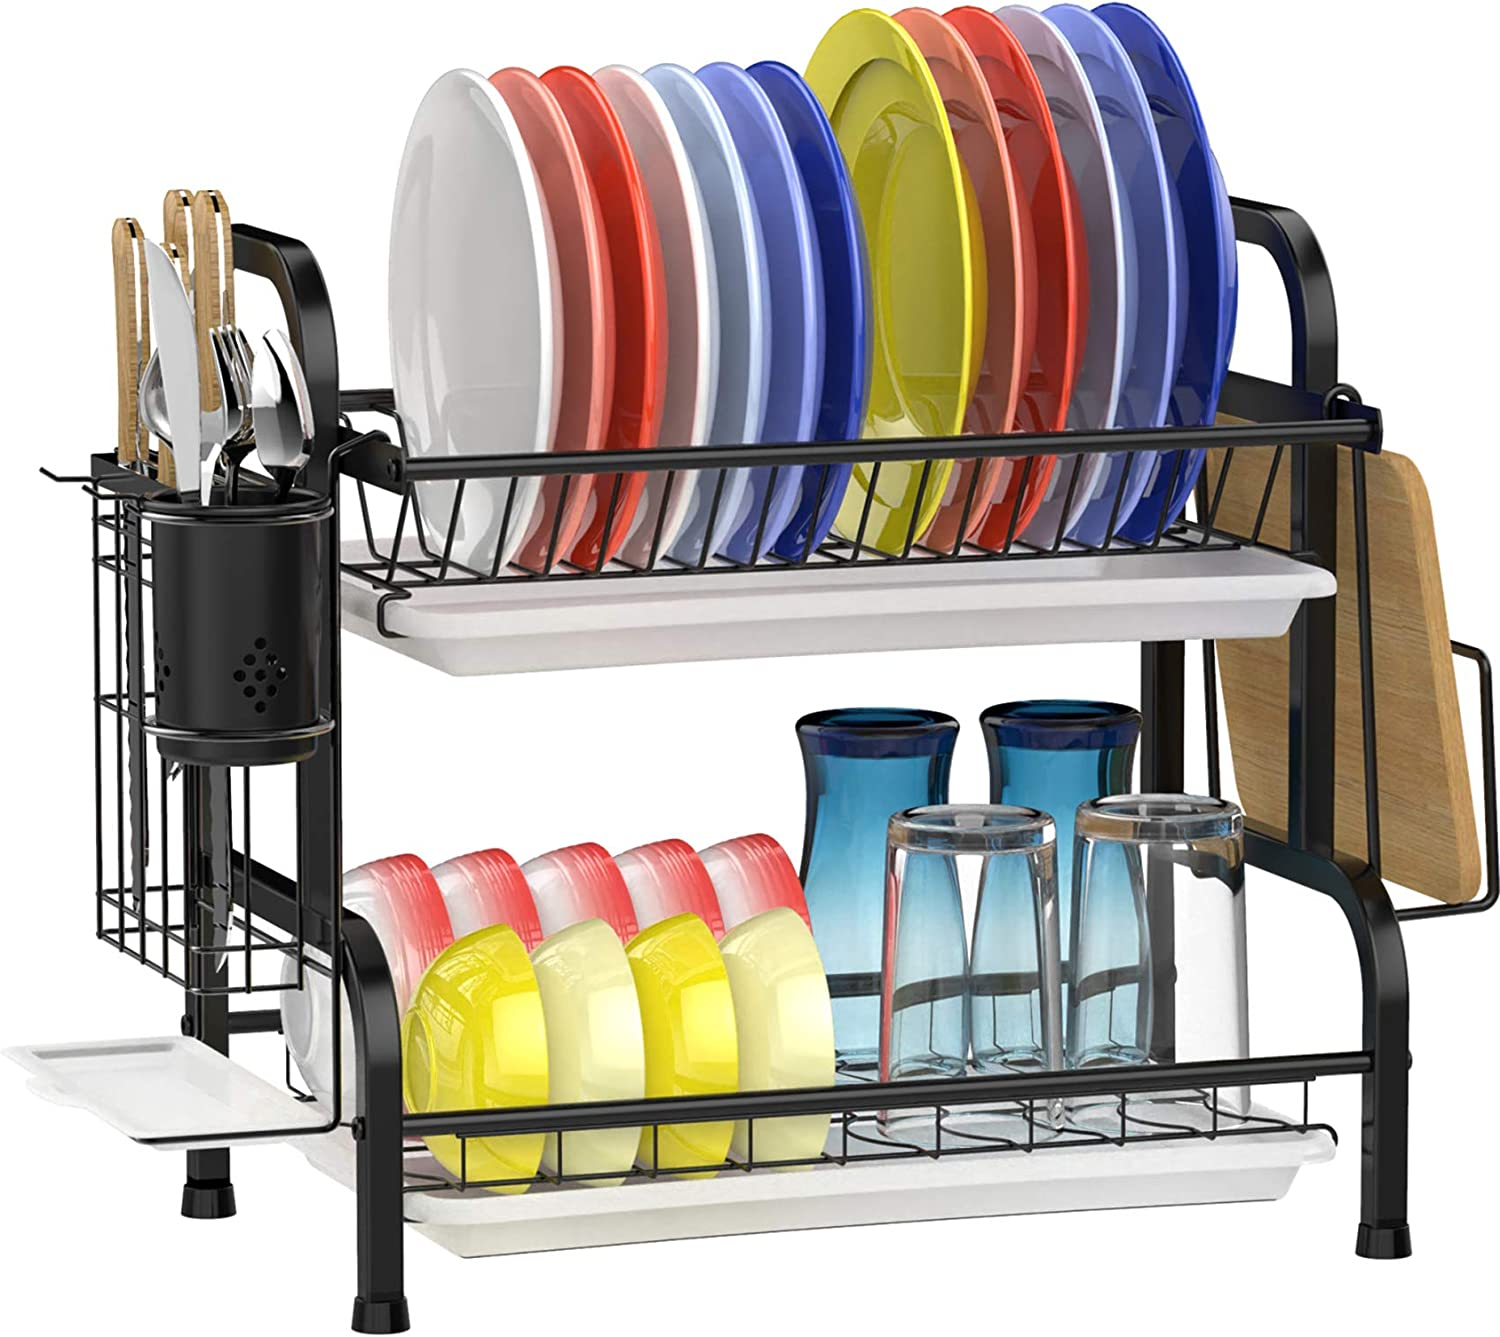 Dish Drying Rack, GSlife Stainless Steel 2 Tier Dish Rack with Drainboard Utensil Holder Dish Drainer for Kitchen Counter, Black